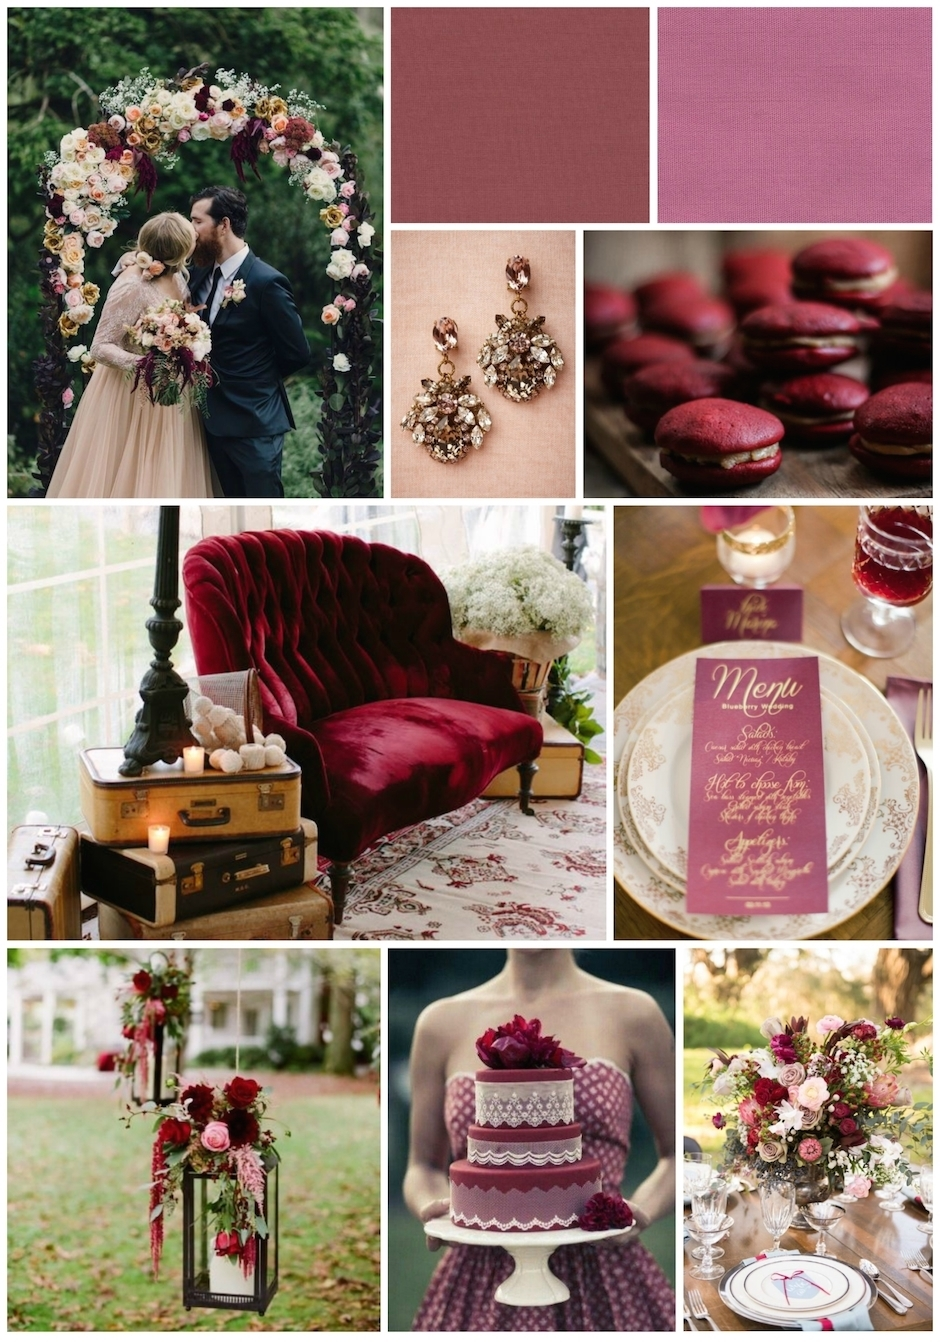 Inspiration photos gathered from Pinterest.